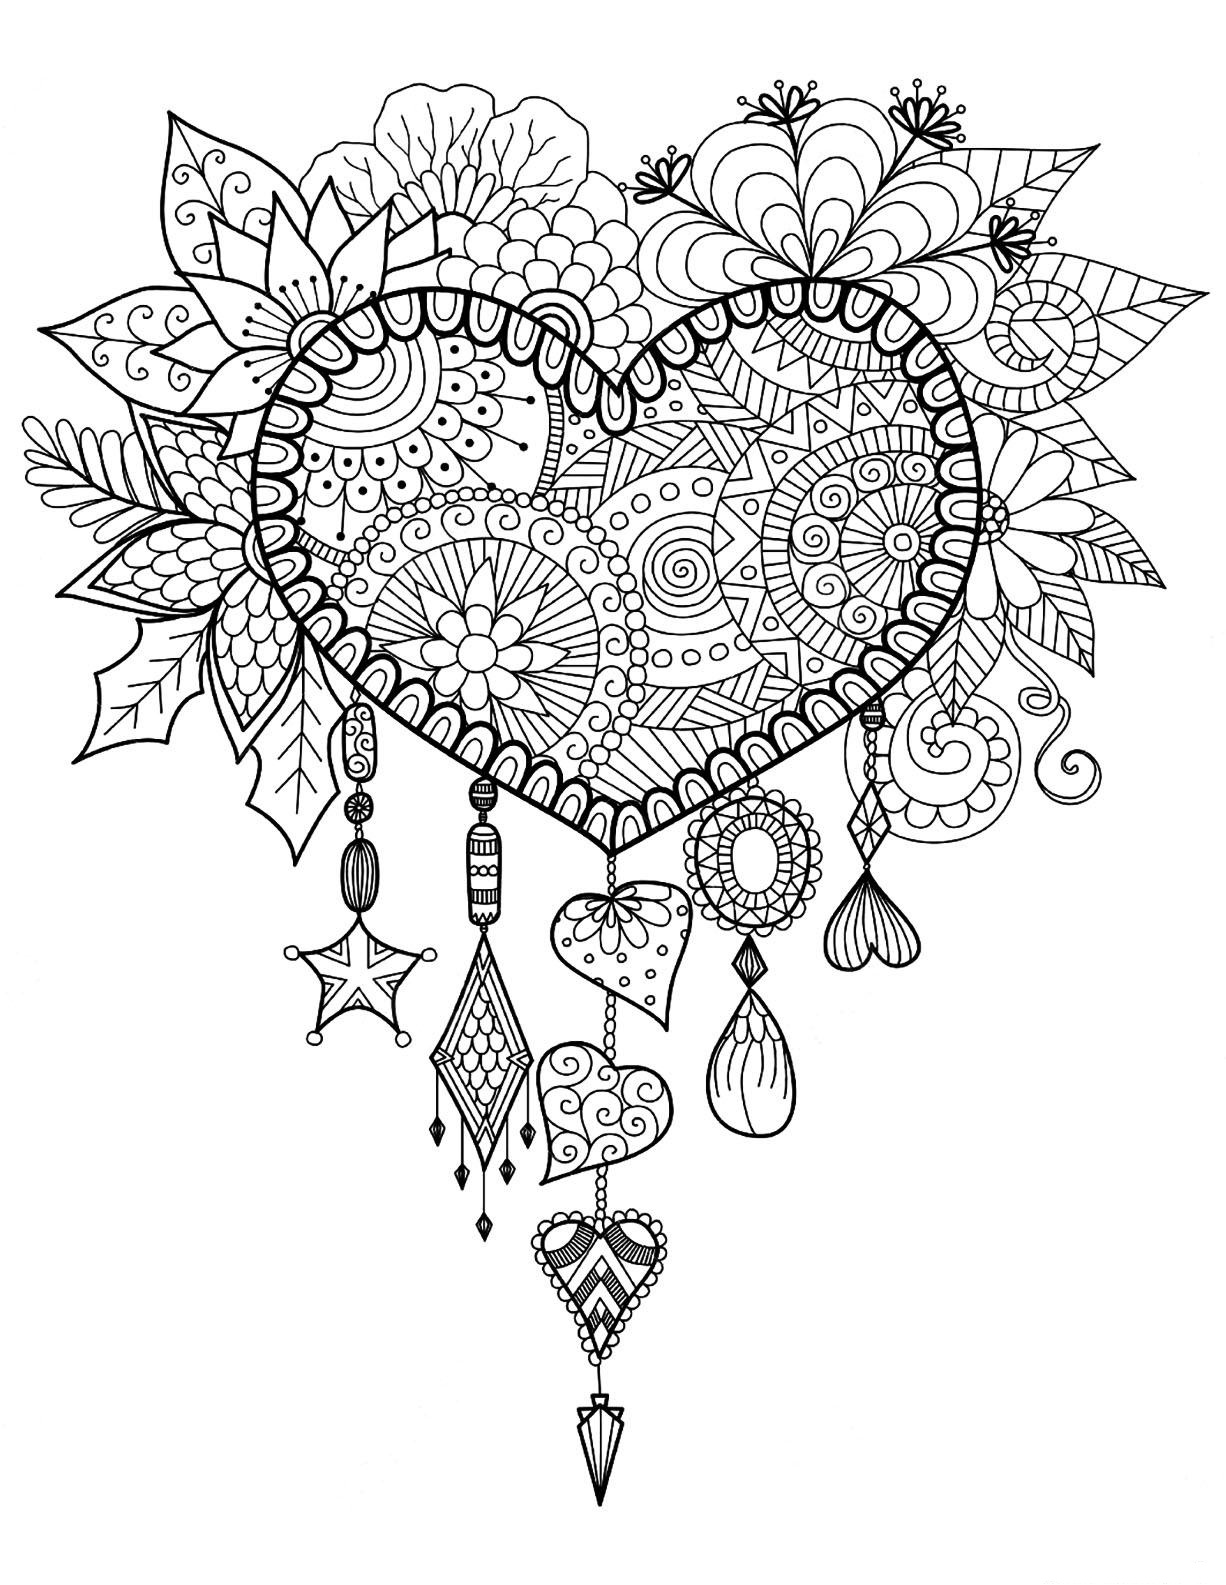 Dreams Catcher Heart Coloring Page